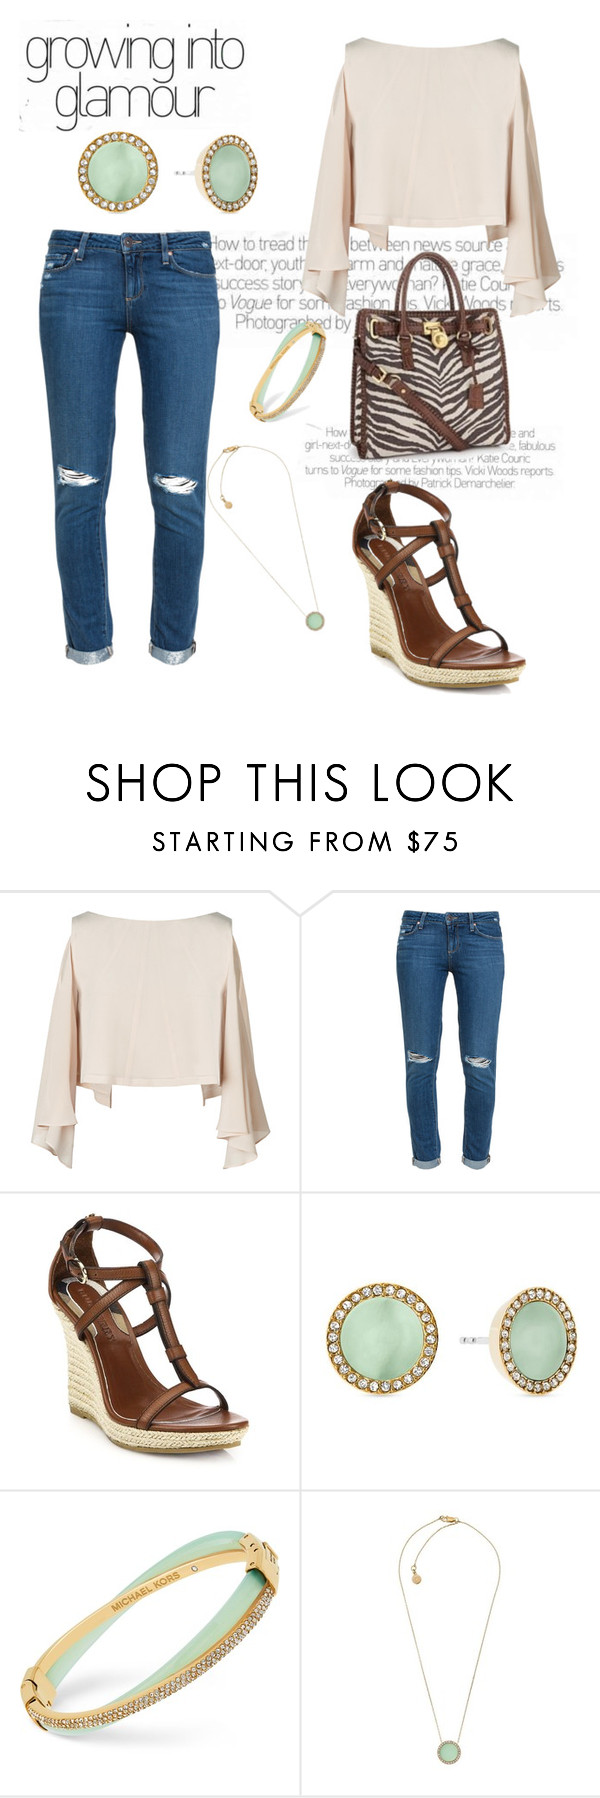 """""""Untitled #2810"""" by janicemckay ❤ liked on Polyvore featuring KORS Michael Kors, Paige Denim, Burberry and Michael Kors"""